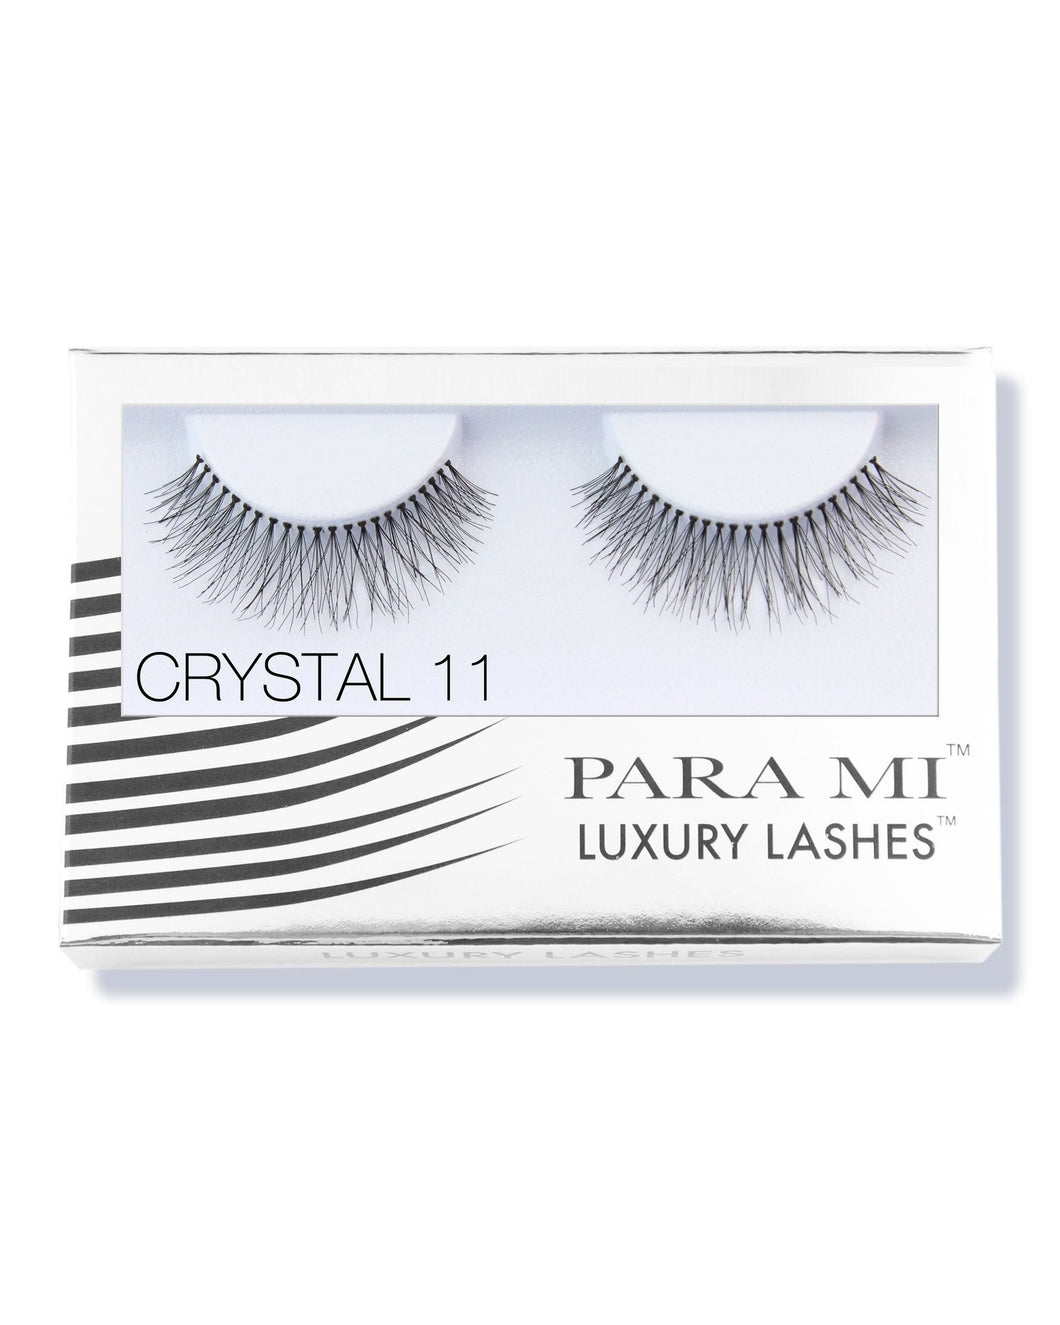 Luxury Lashes Eyelashes - Crystal 11